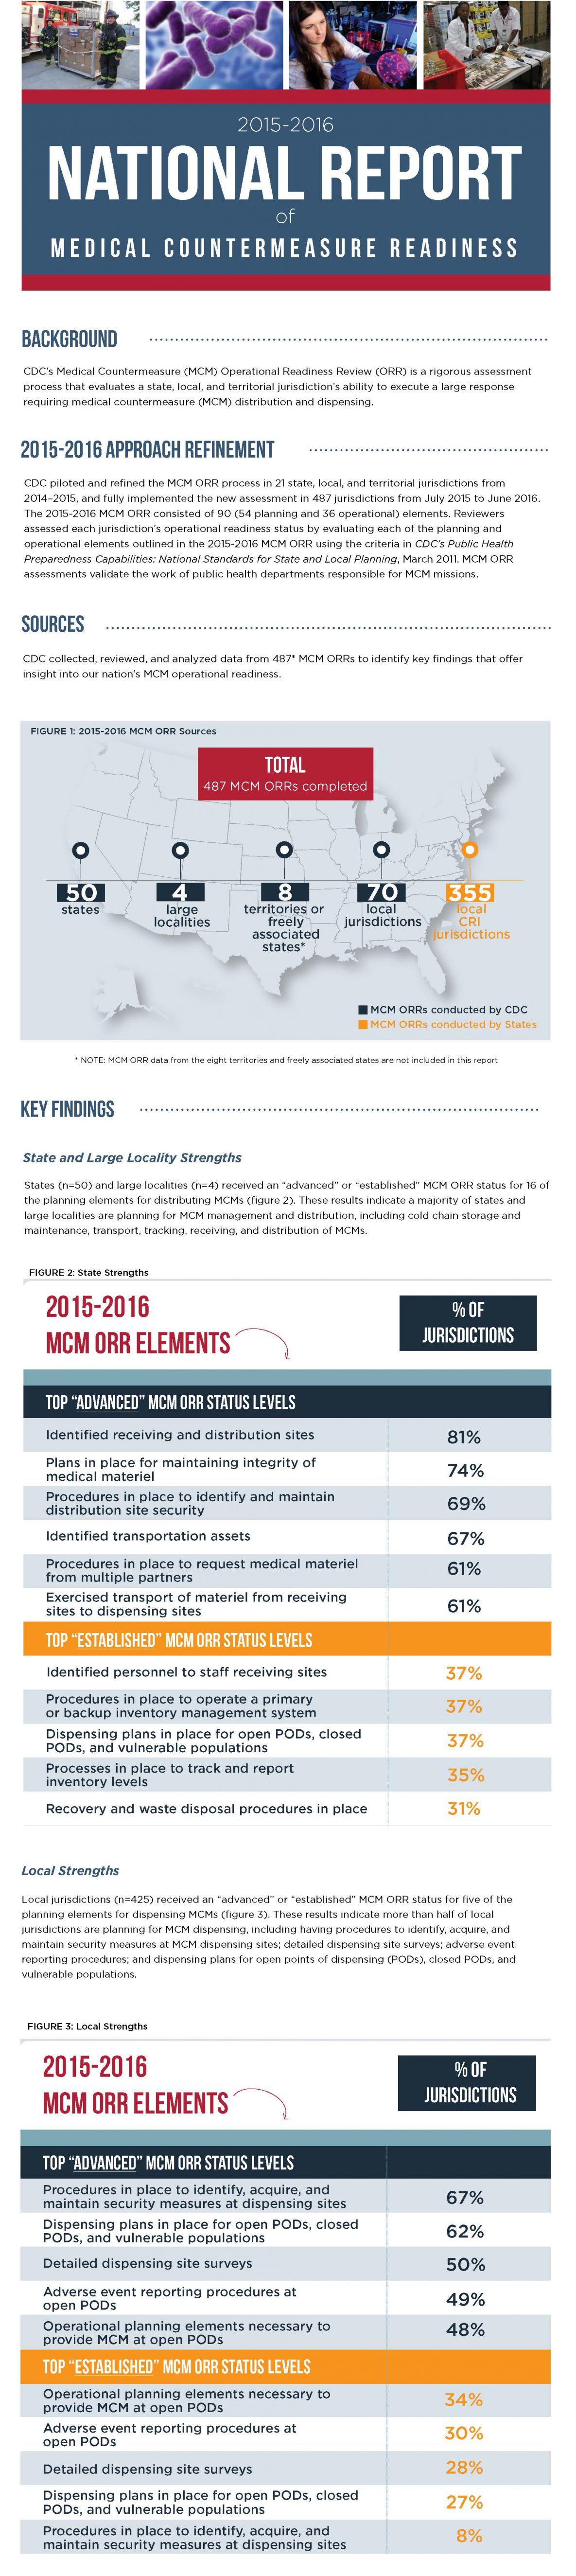 2015-2016 national report of medical countermeasure readiness [infographic]